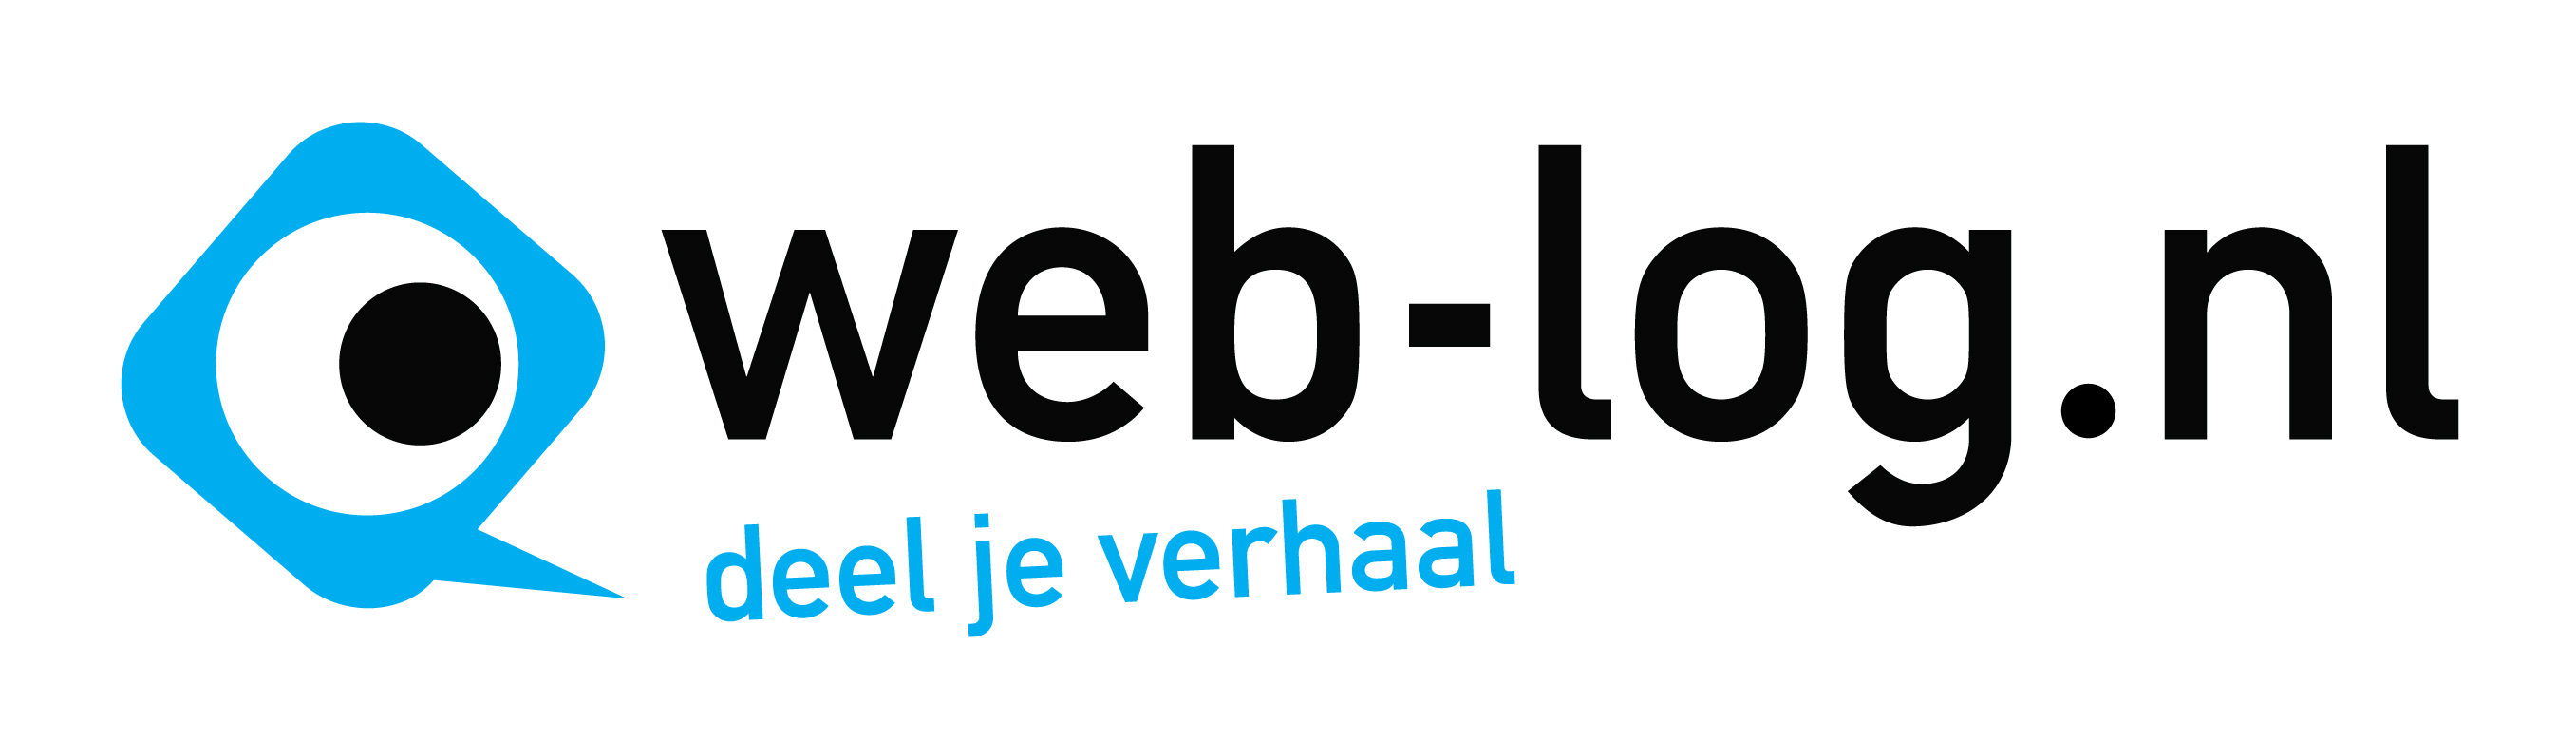 Web log logo definitief